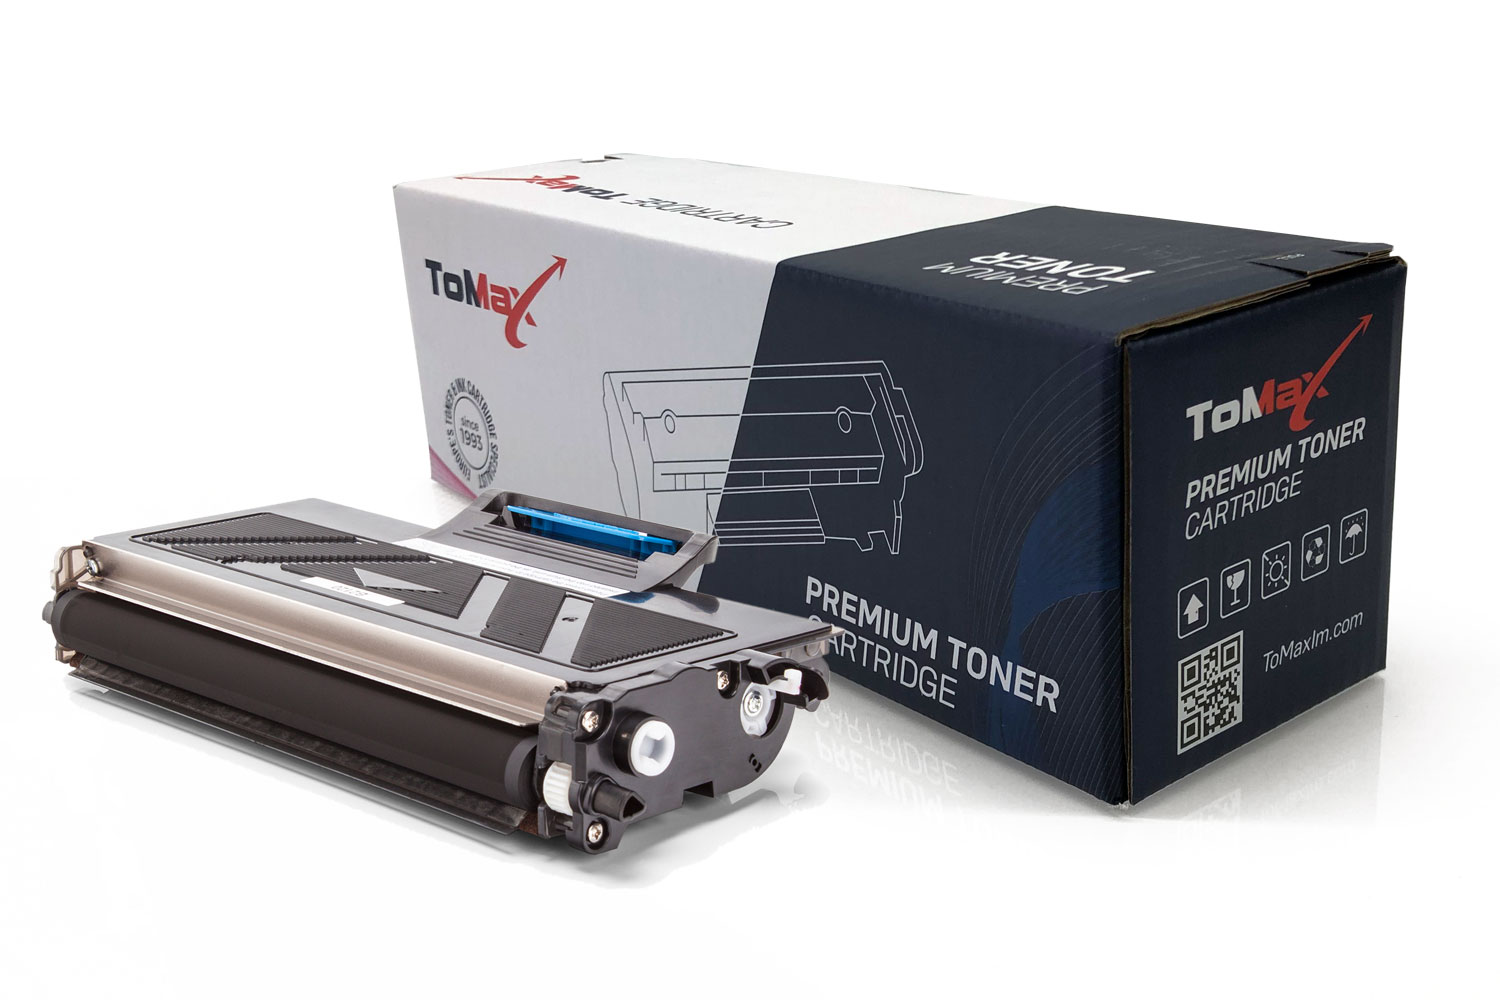 ToMax Premium Toner Cartridge replaces Brother TN-2120 Black